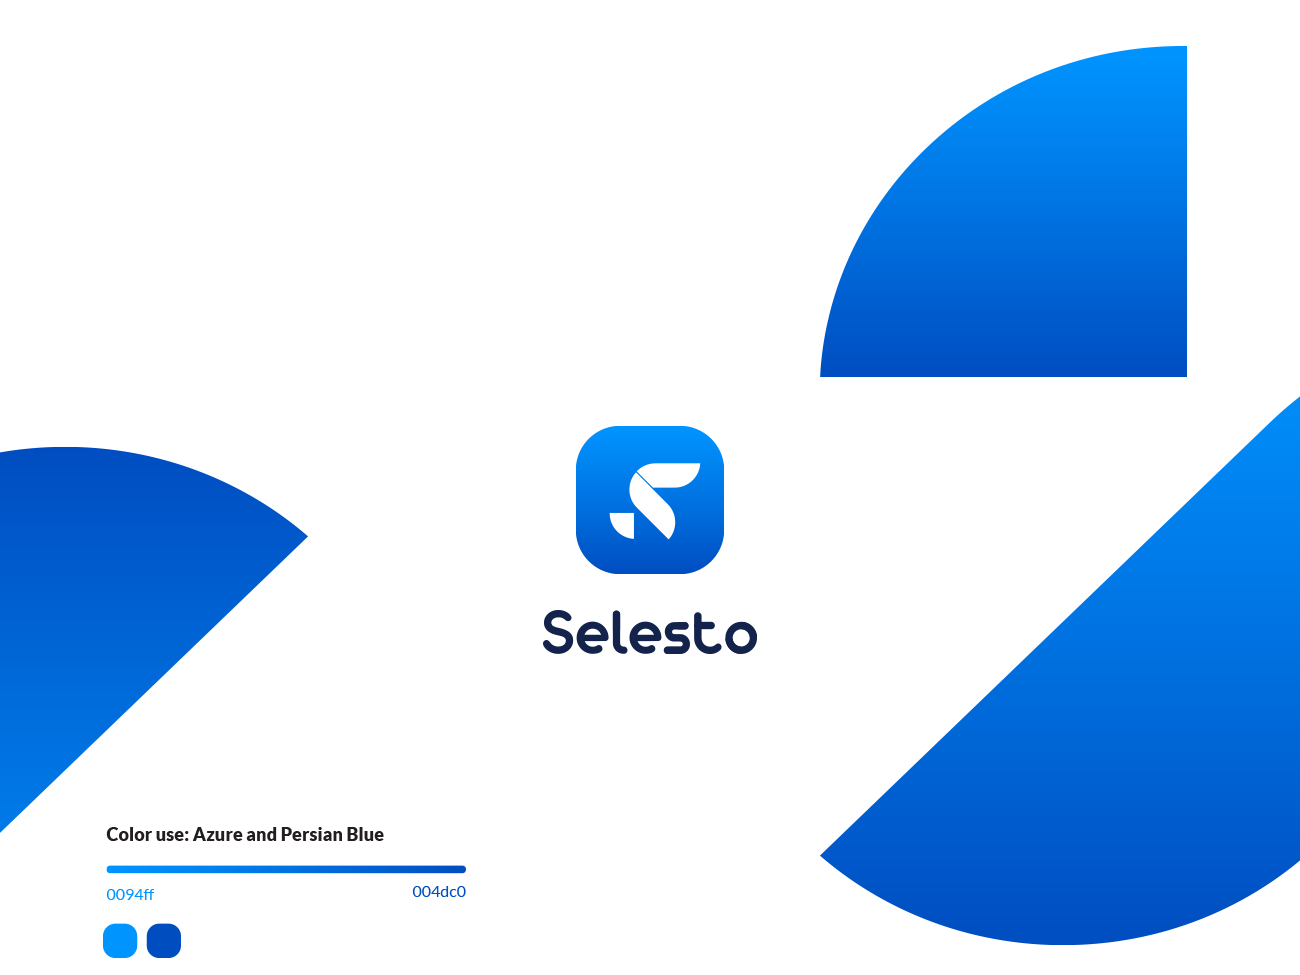 New refresh logo for Selesto Group type app designer typography web creativeadobe graphic design brand ux design inspiration ui logo brand icon branding vector illustration color graphic creative design